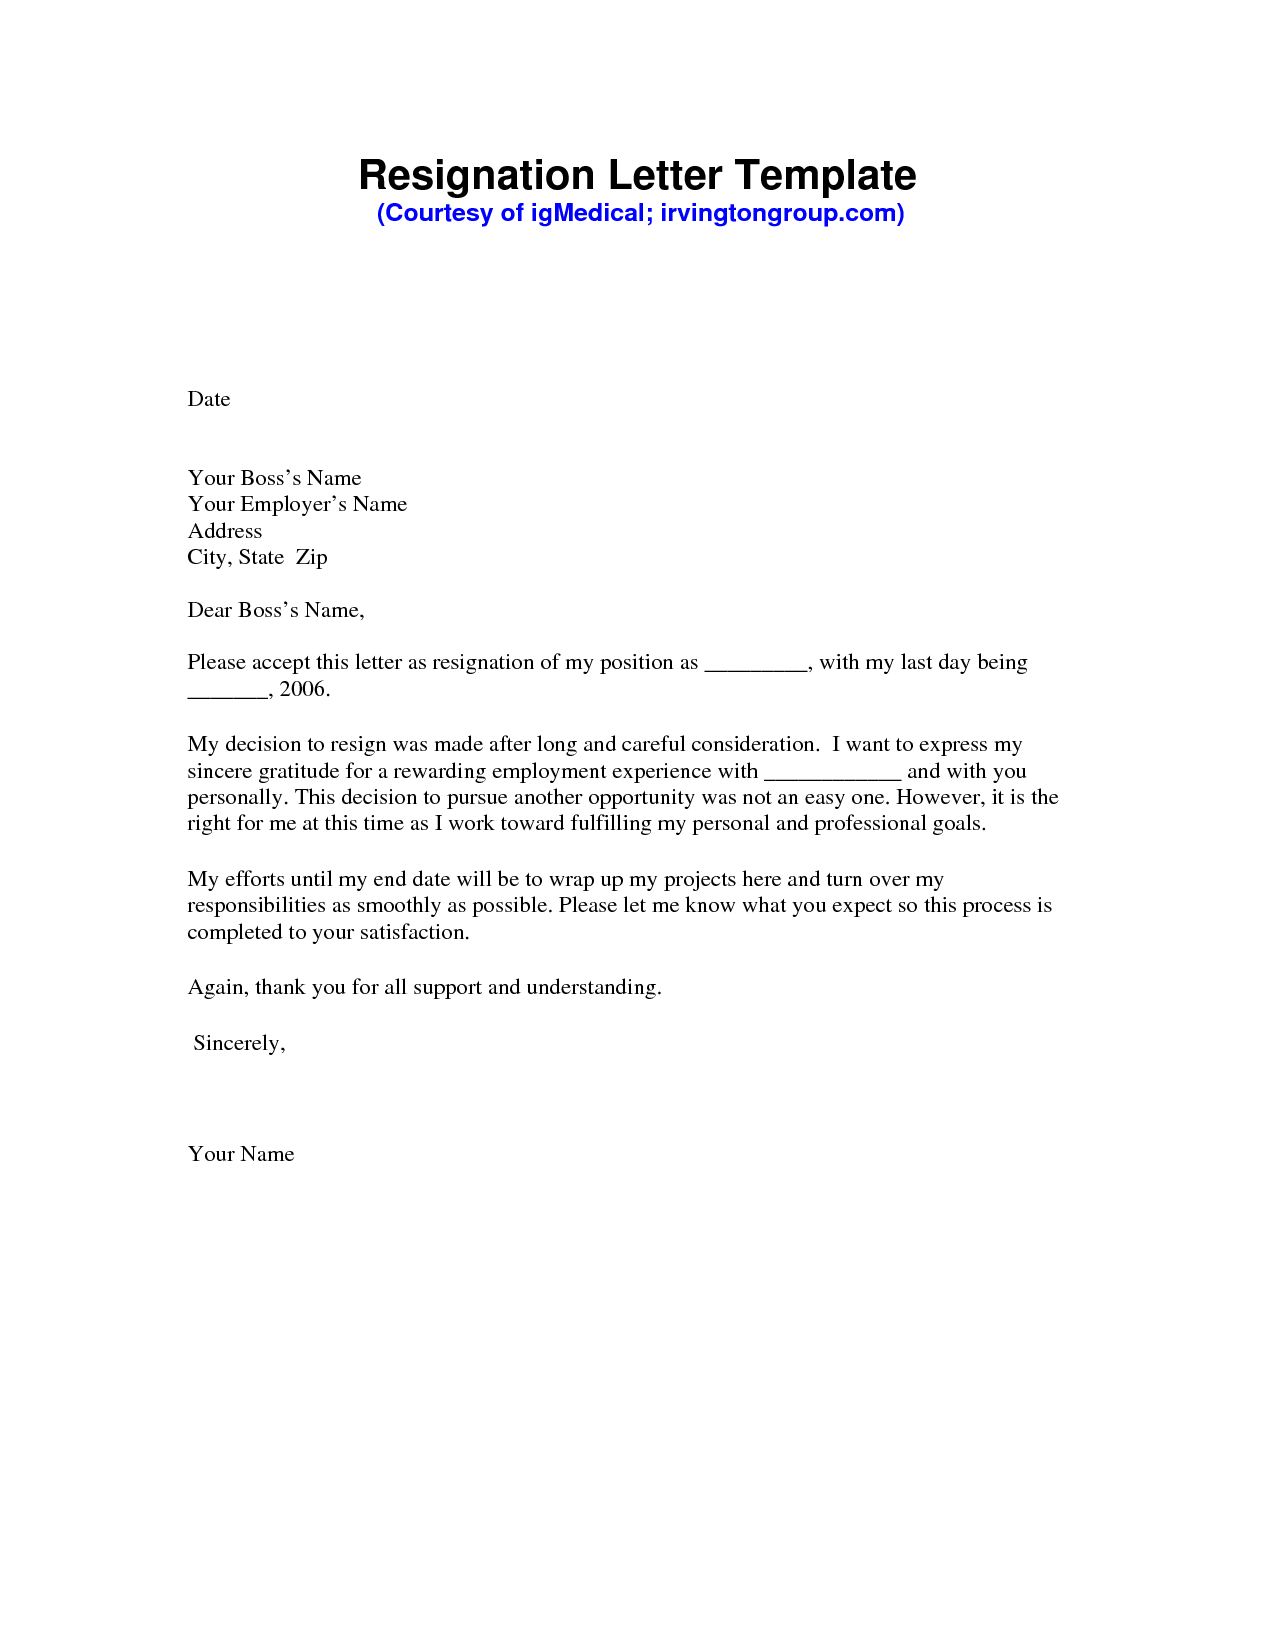 Resignation Letter Free Template Download - Resignation Letter Sample Pdf Resignation Letter